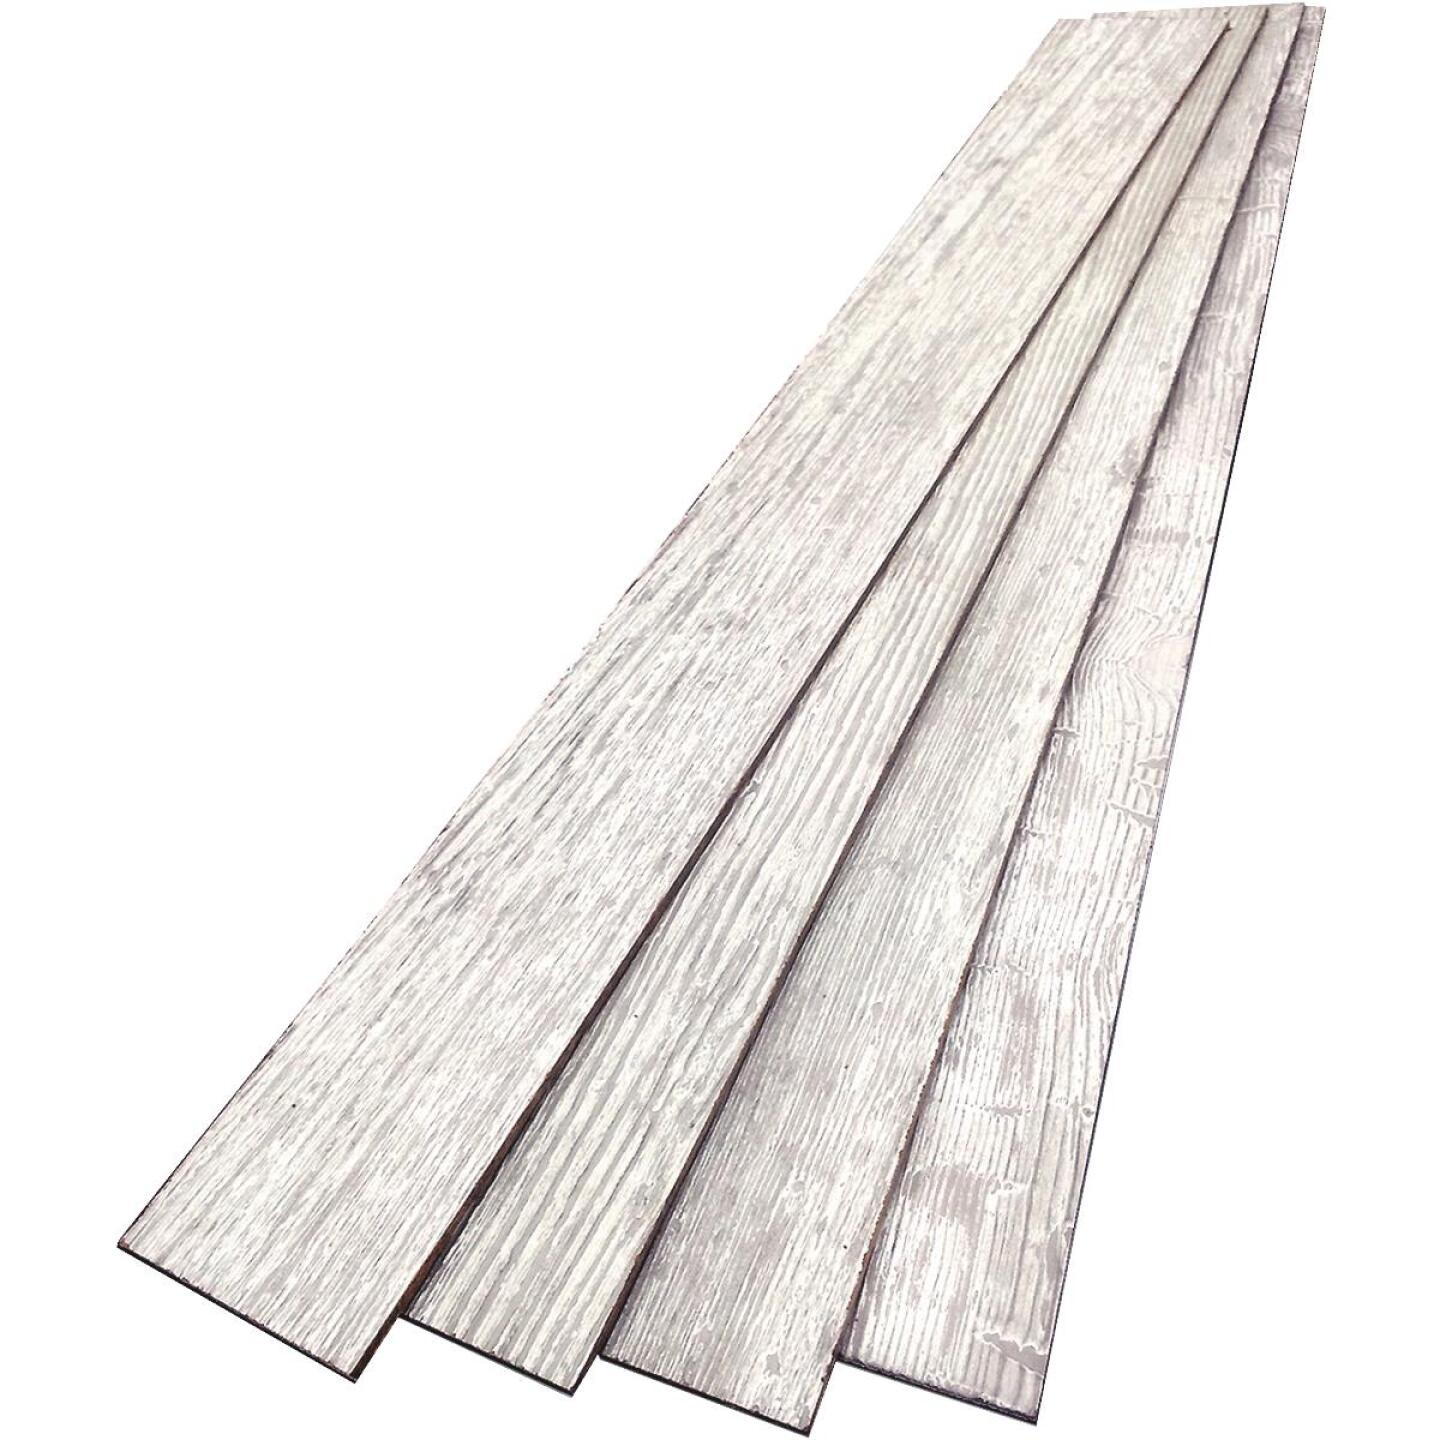 DPI 6 In. W. x 48 In. L. x 1/4 In. Thick Cottonwood Rustic Wall Plank (12-Pack) Image 2